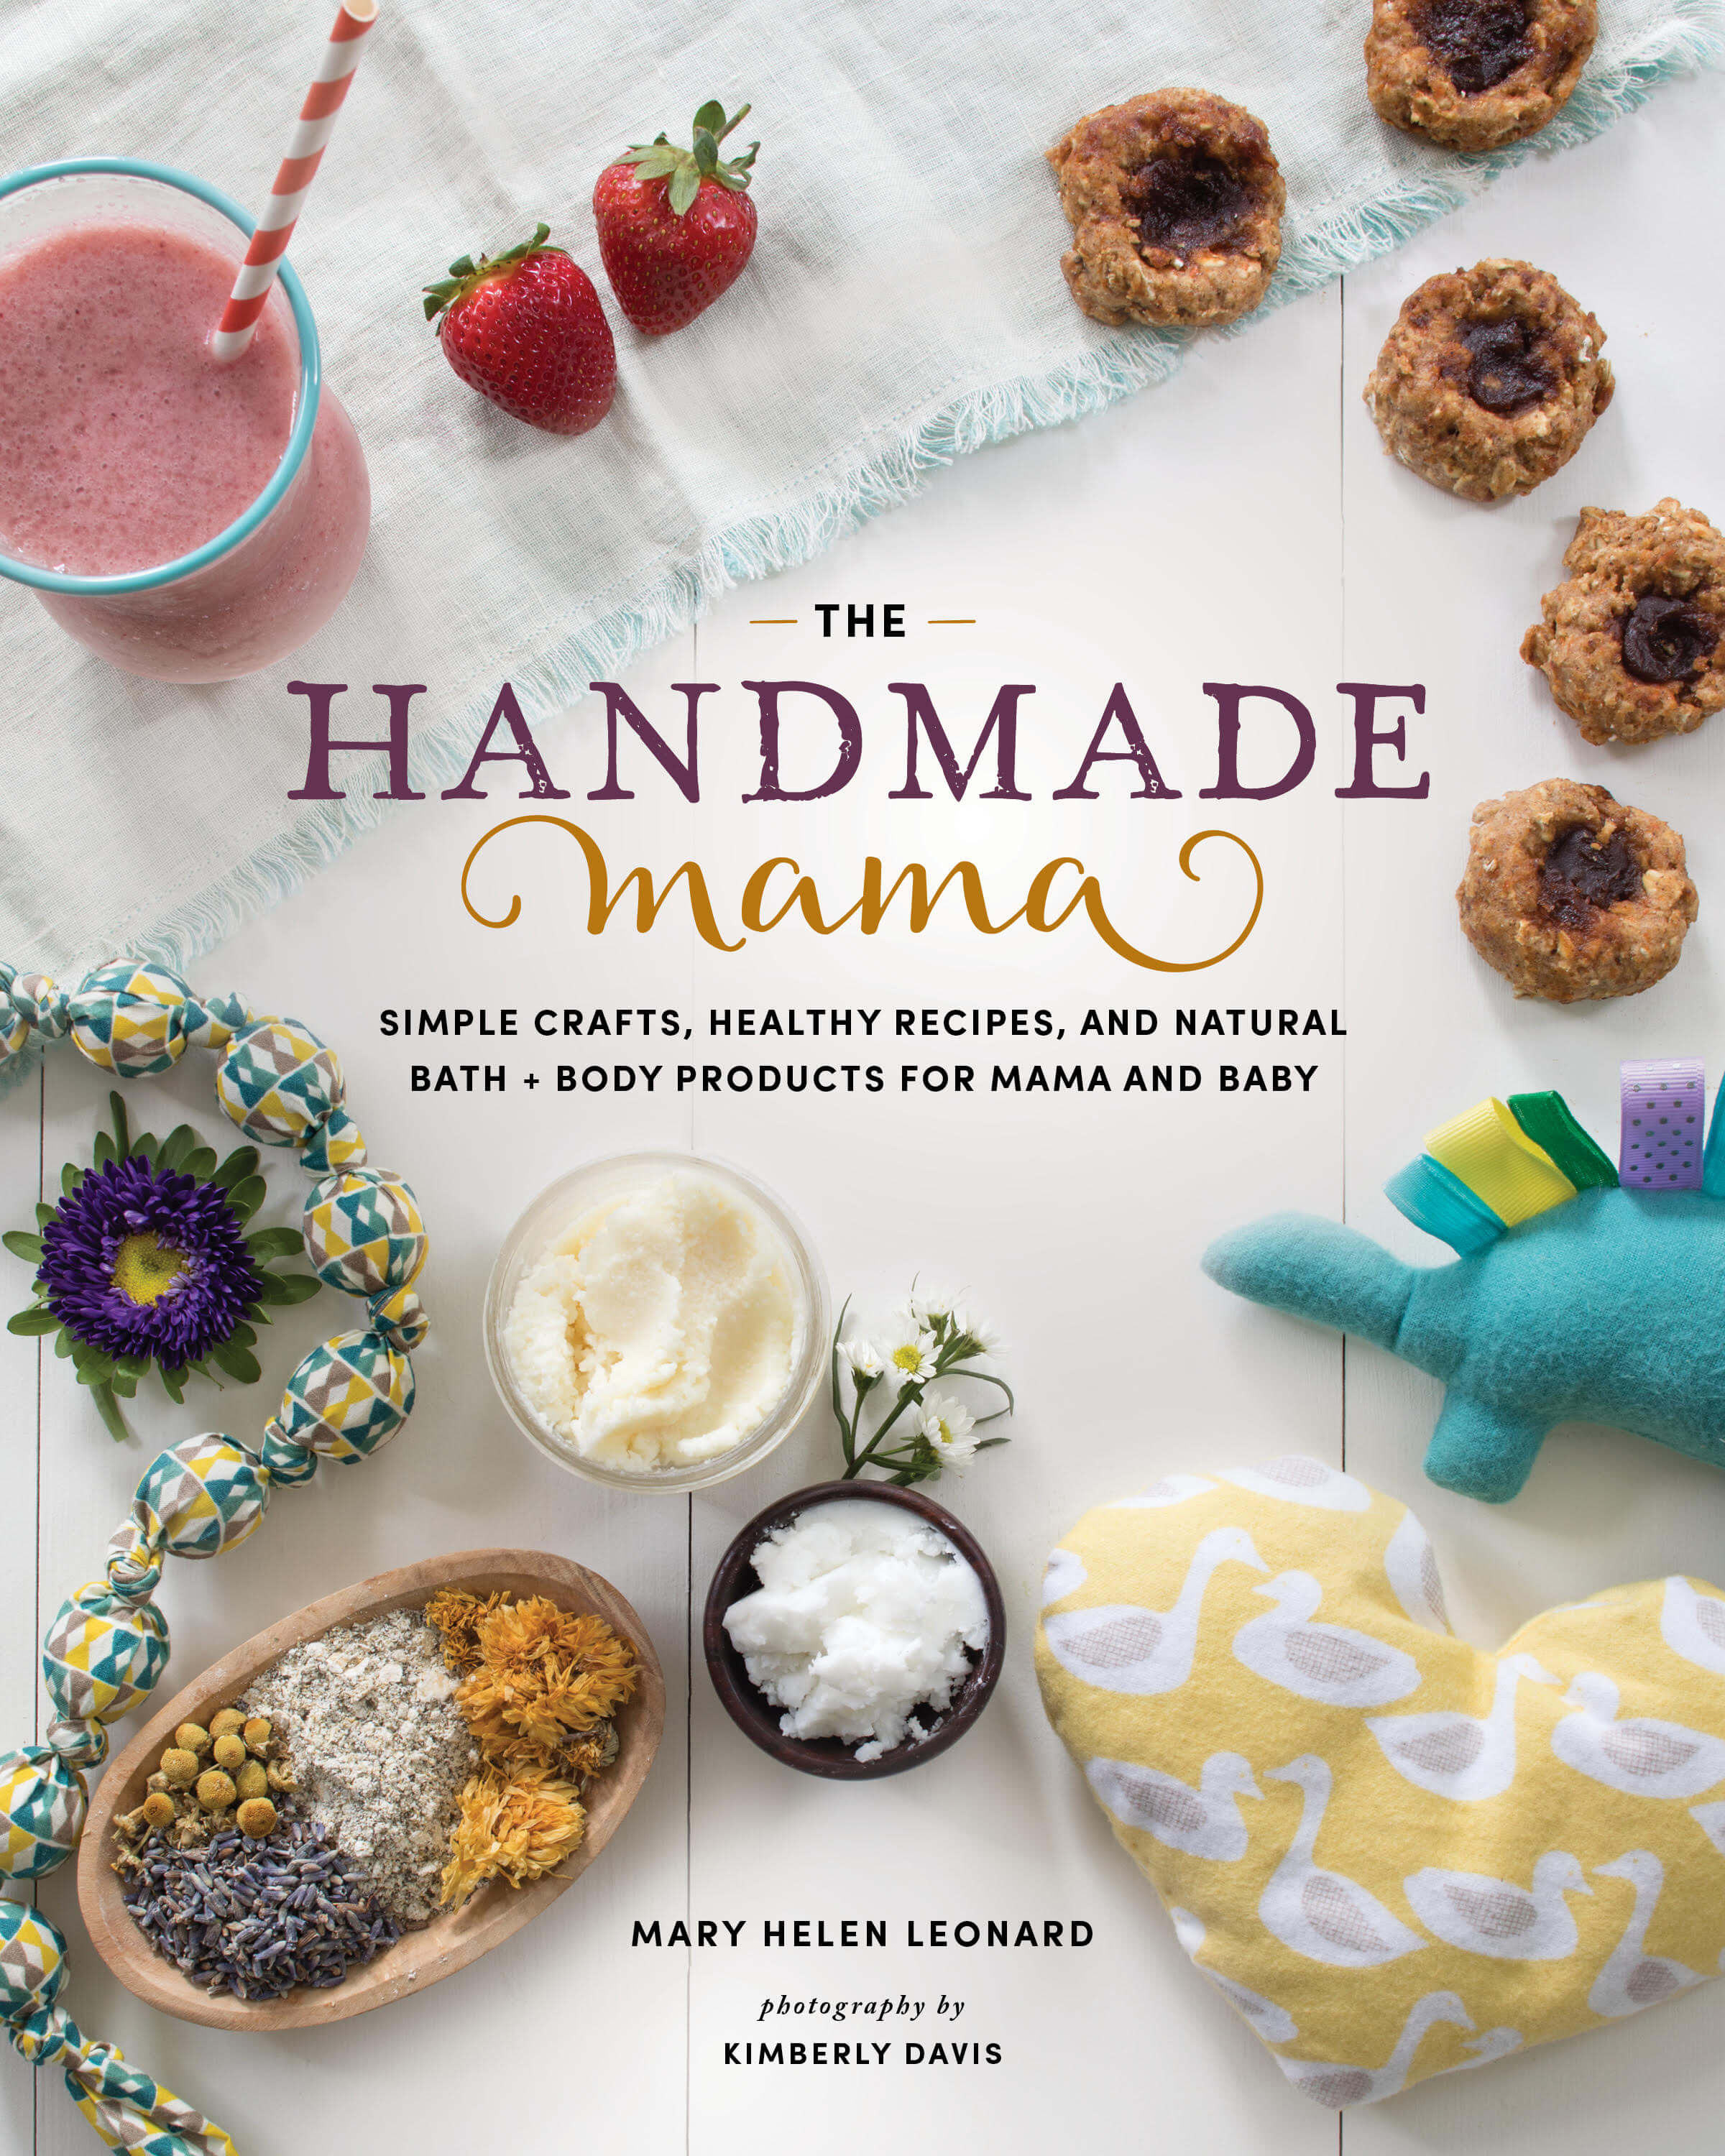 The Handmade Mama by Mary Helen Leonard